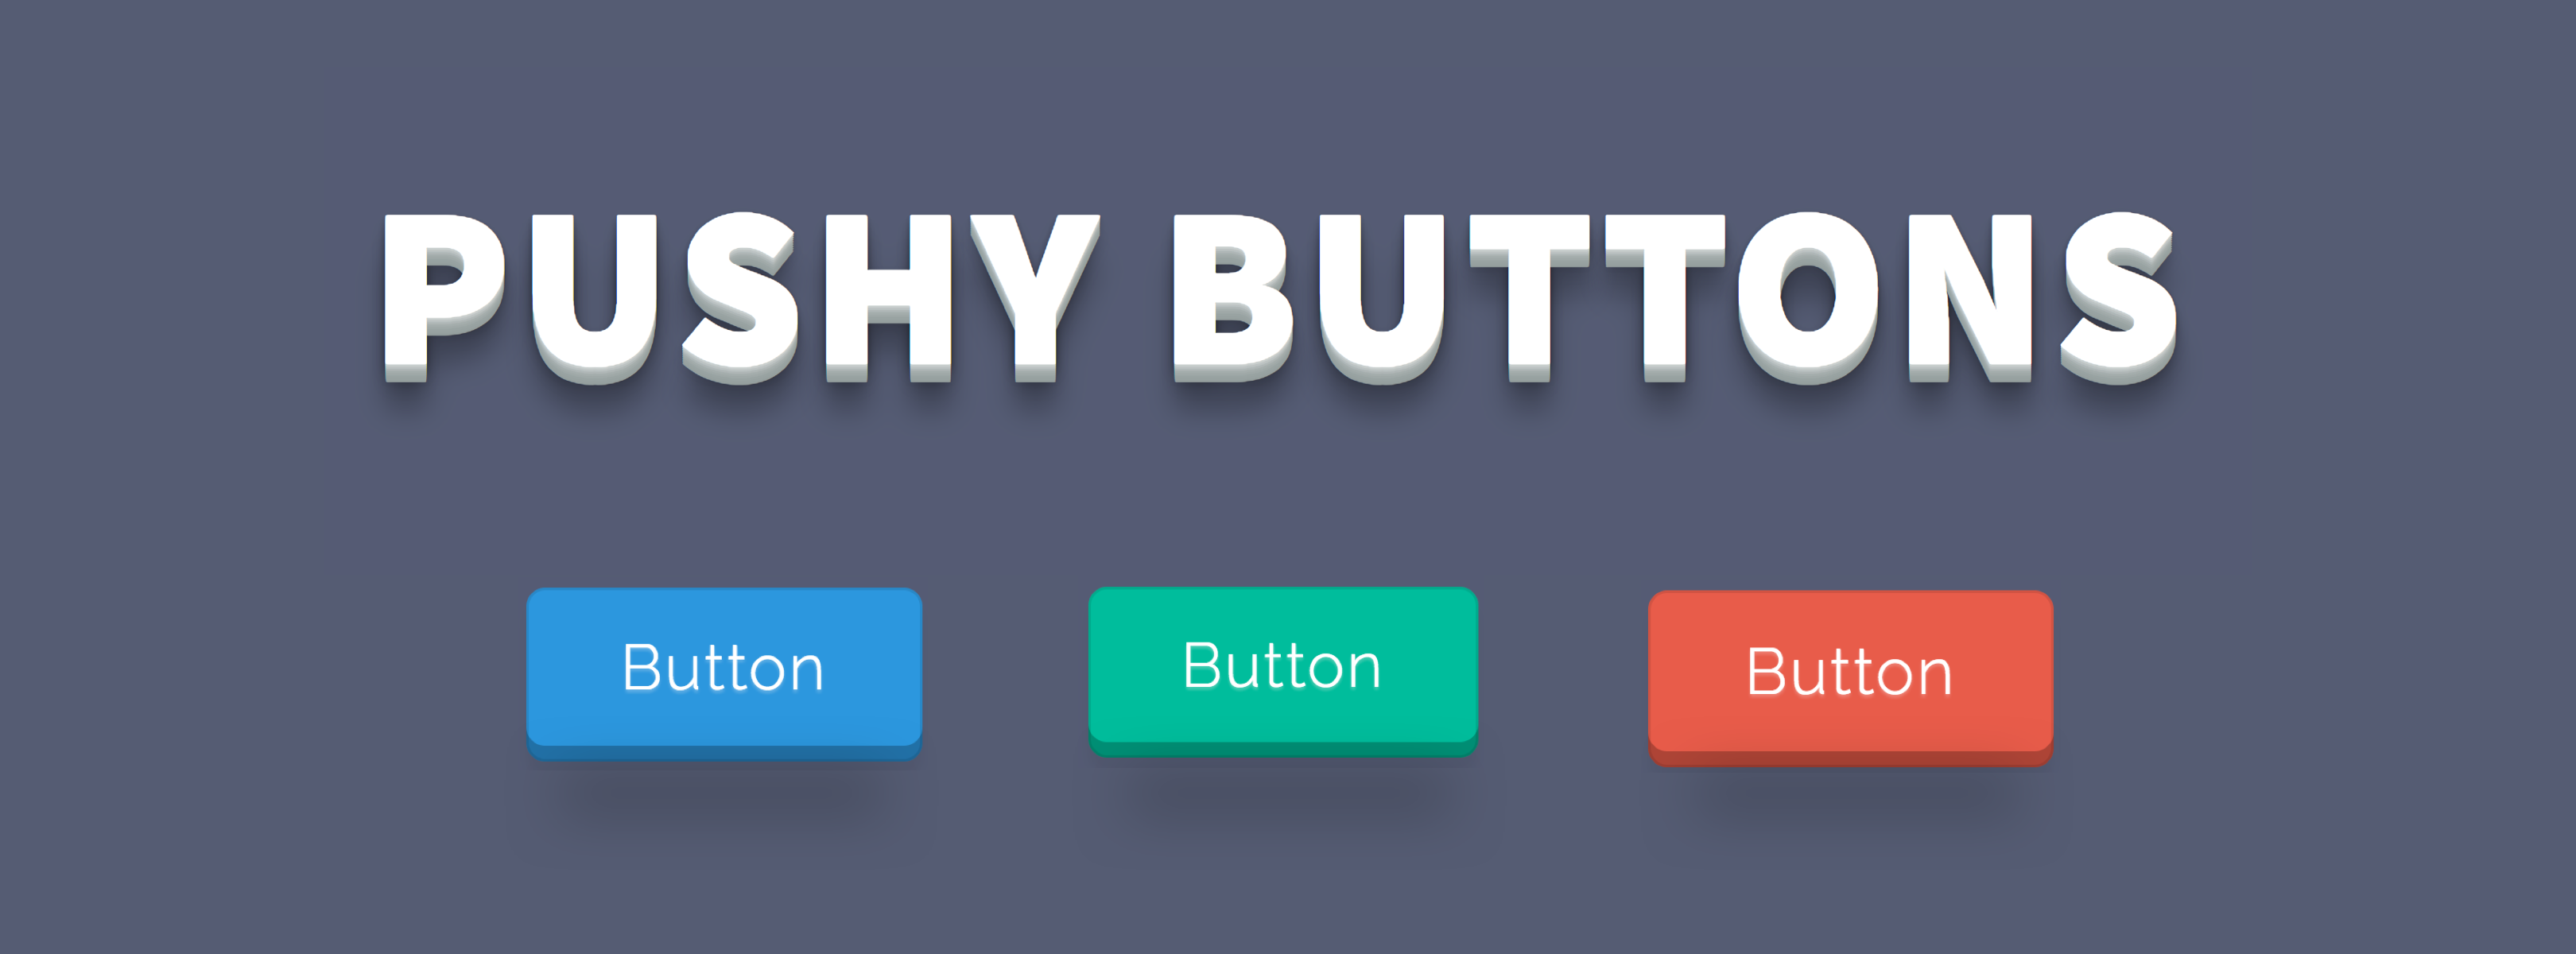 pushy-buttons